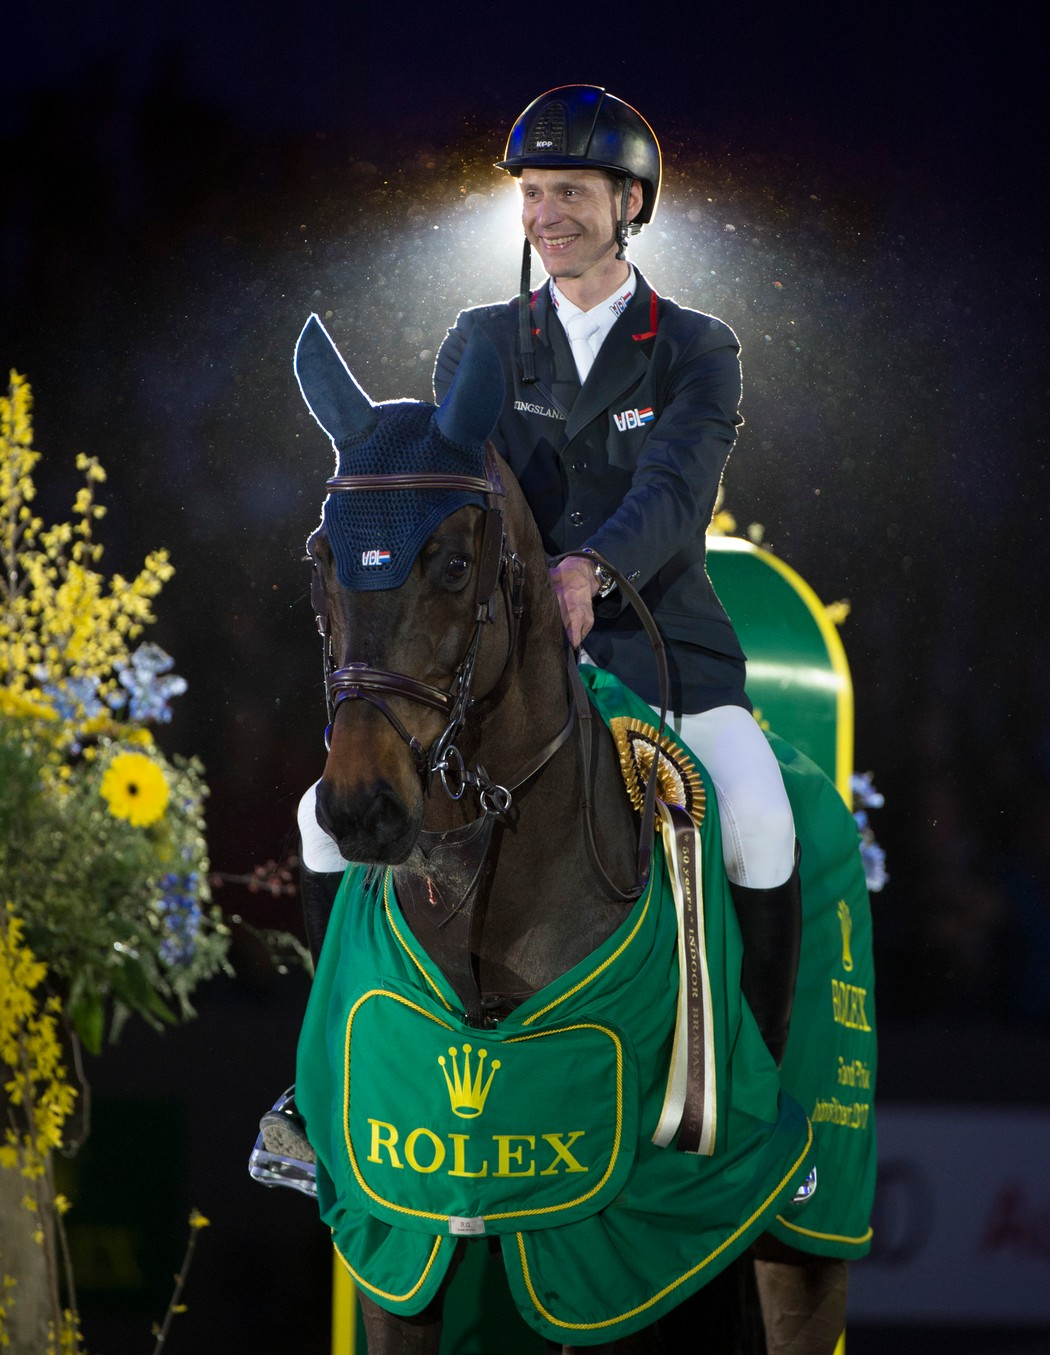 Horse Times Egypt: Equestrian Magazine :News :HOME FAVOURITE LEOPOLD VAN ASTEN WINS THE ROLEX GRAND PRIX AT INDOOR BRABANT